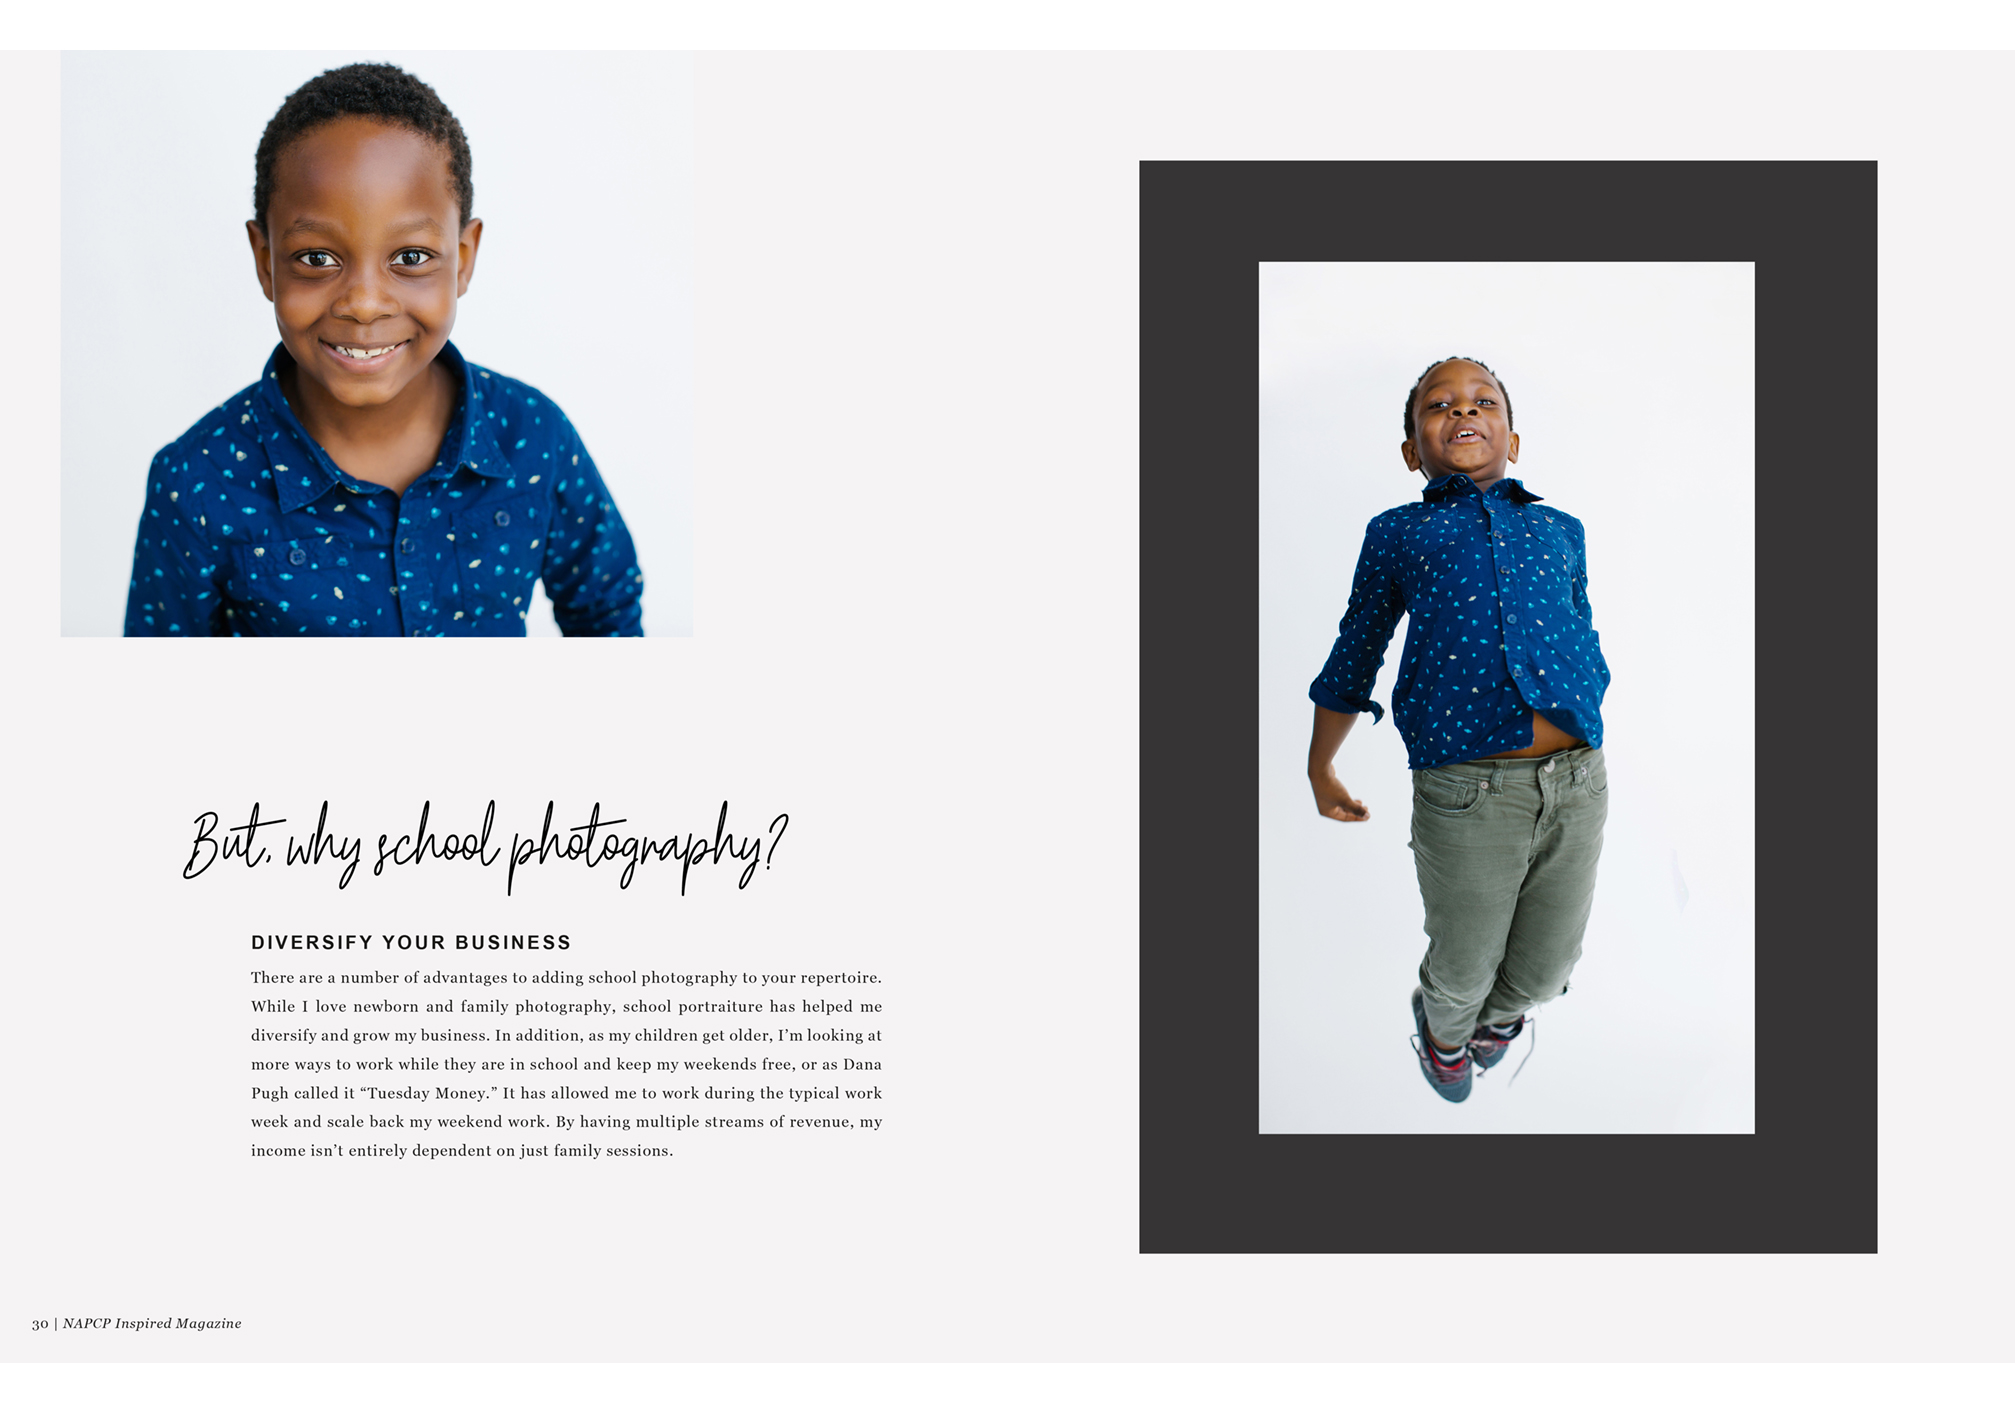 school photography, diversify your business, NAPCP Inspired Magazine